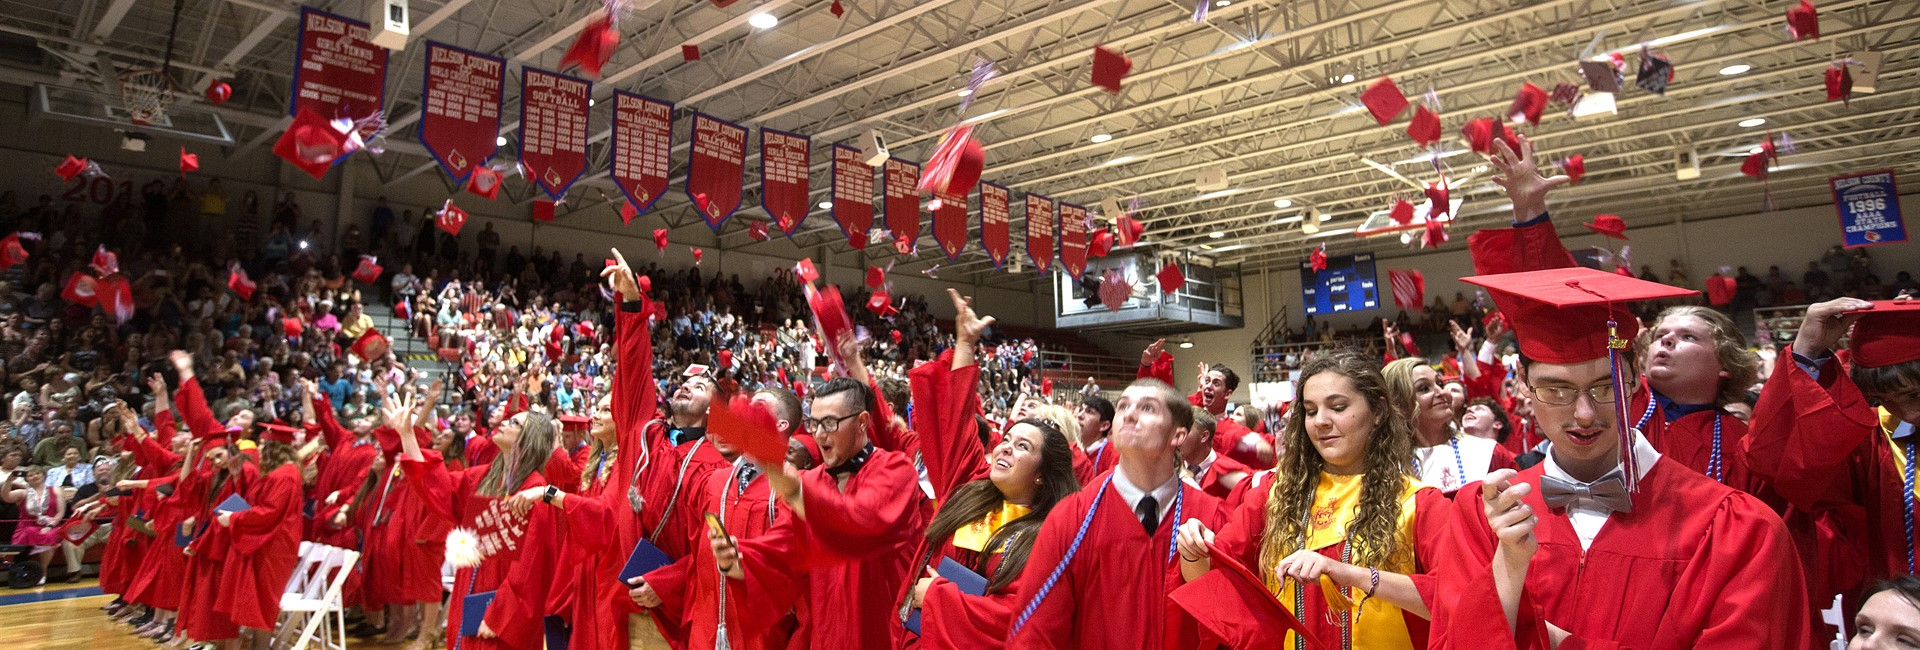 Graduates celebrate their accomplishment during graduation exercise.